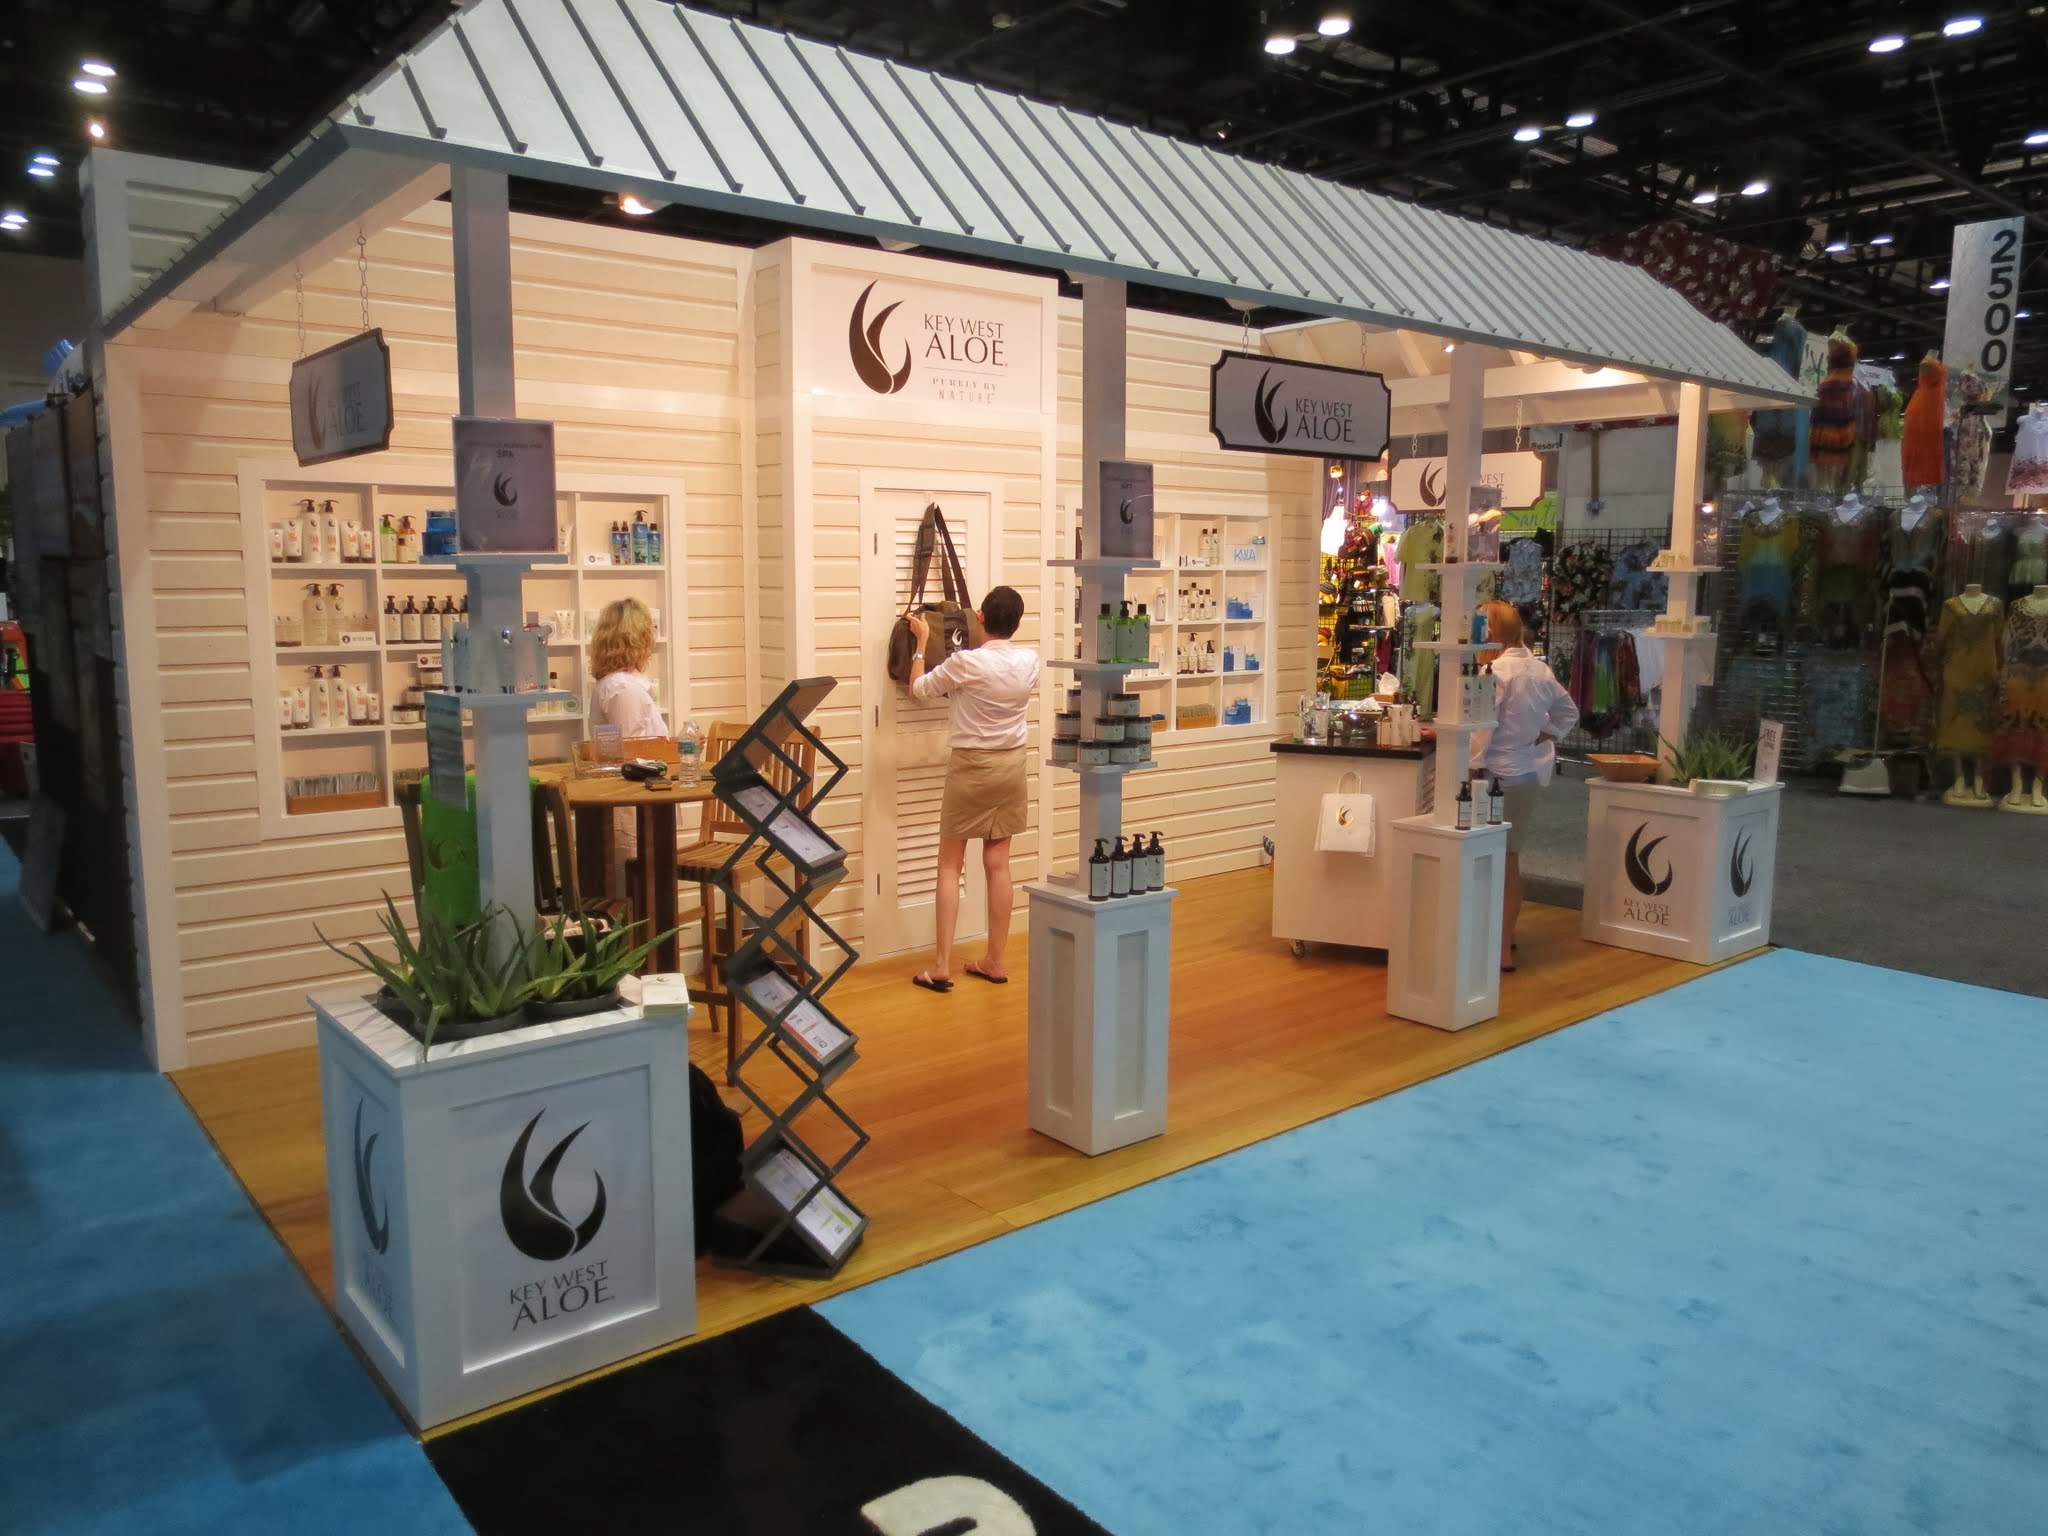 Key West Aloe Trade Show Booth_Reality.jpg